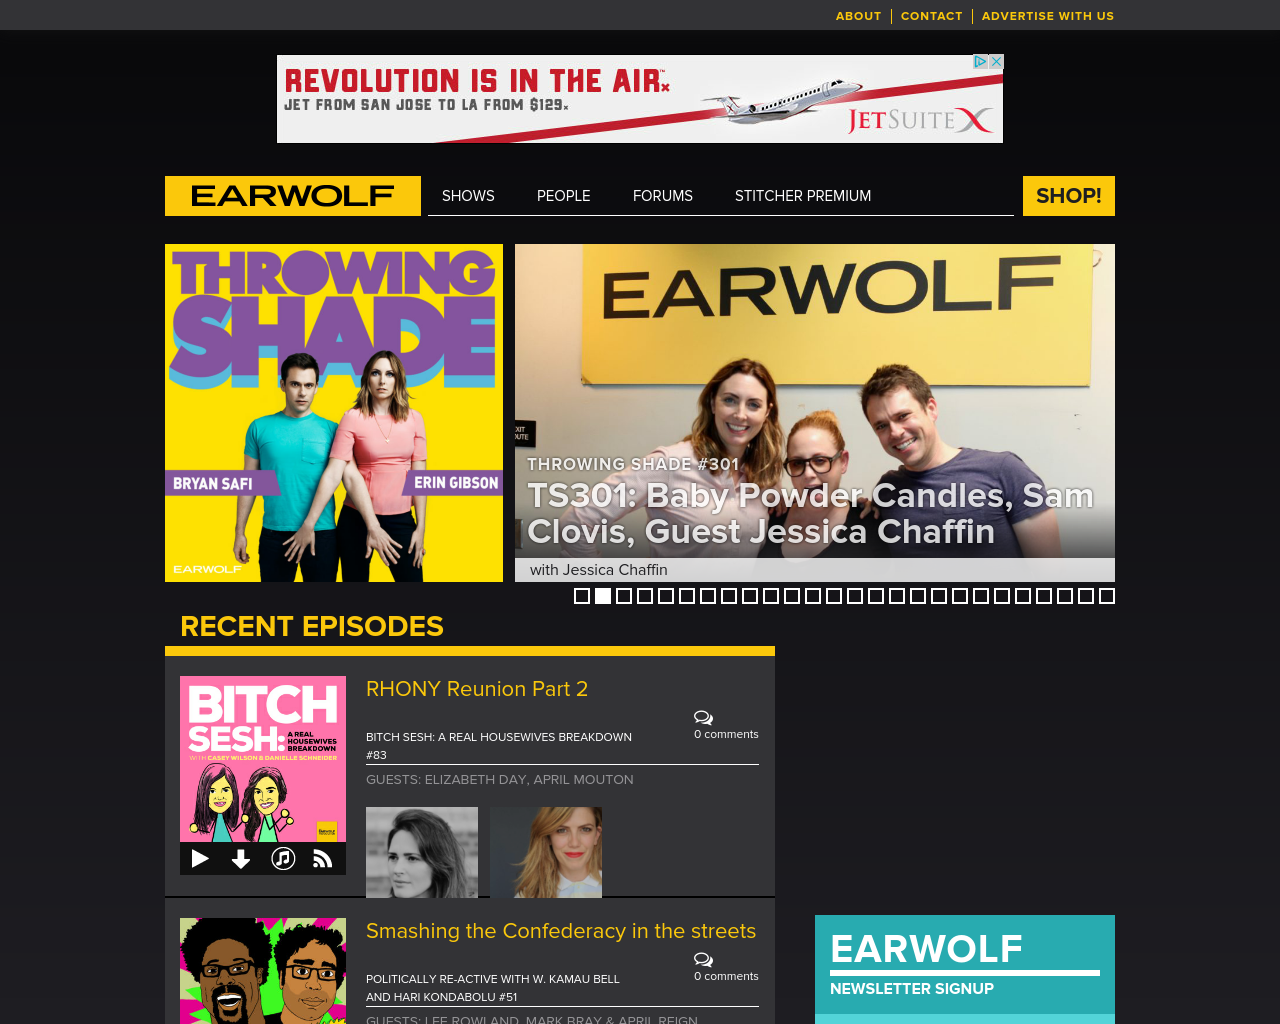 Earwolf.com-Advertising-Reviews-Pricing